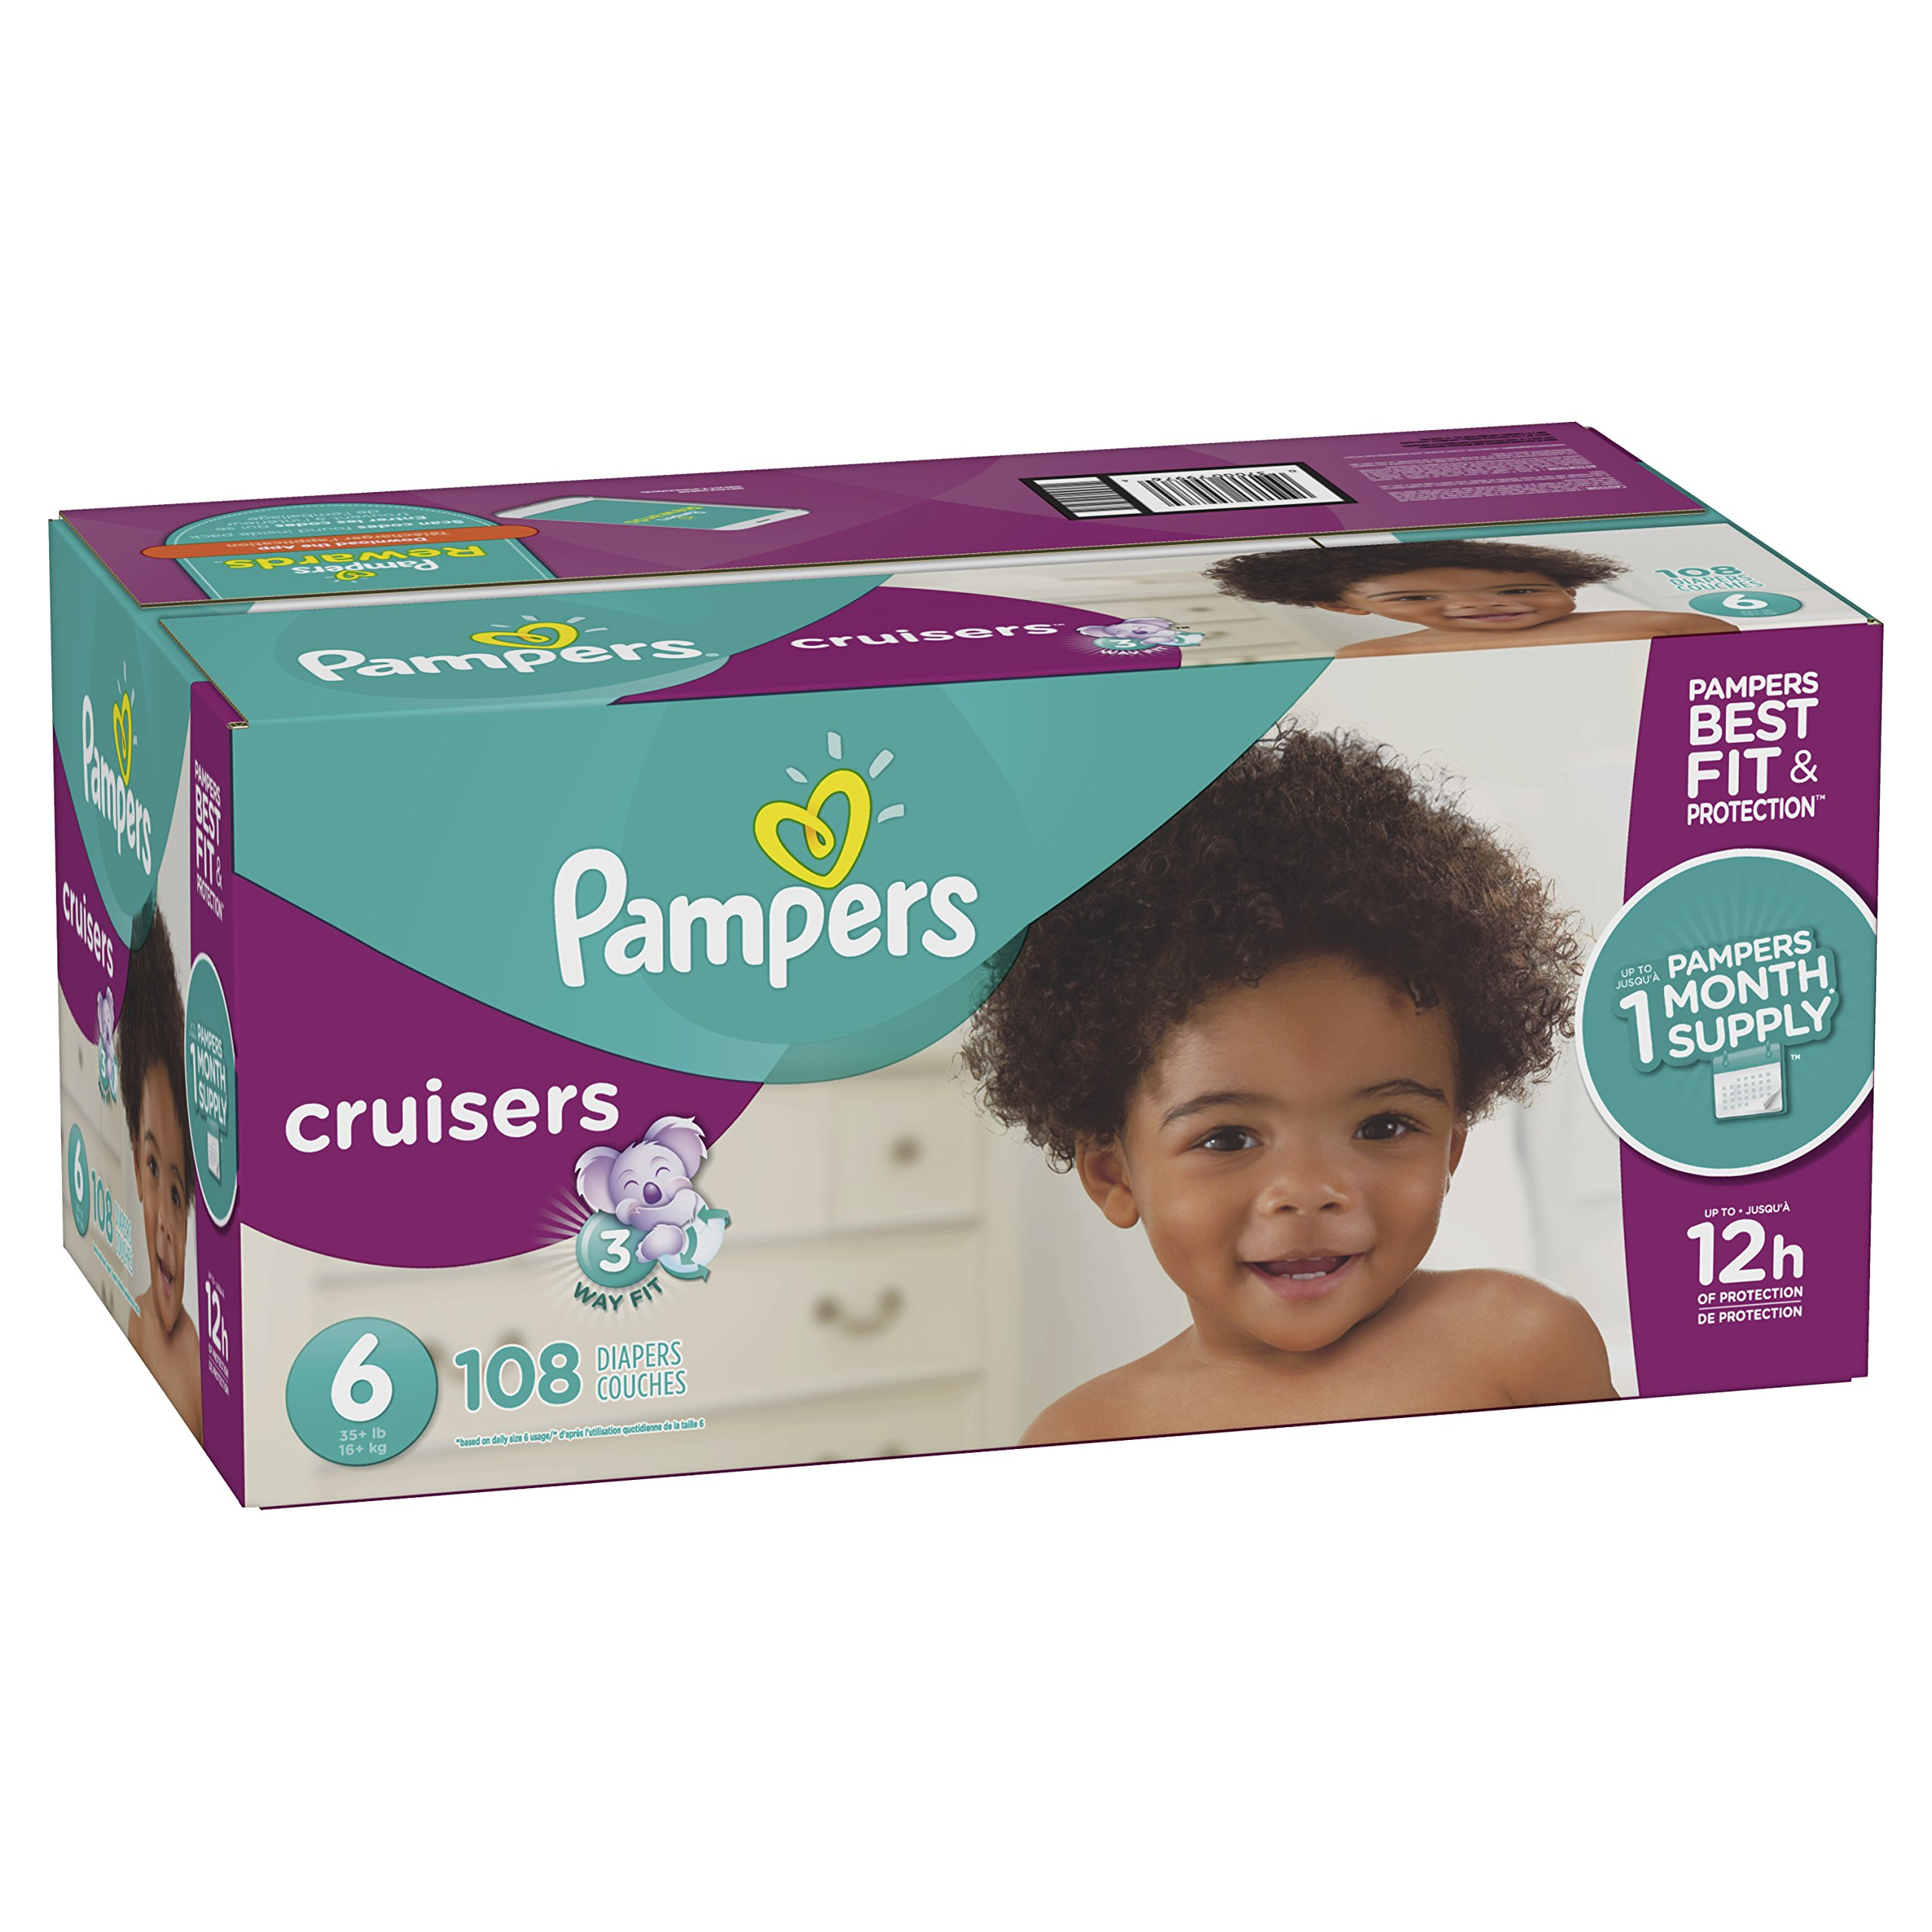 Pampers Cruisers Disposable Diapers Size 6, 108 Count by Pampers (Image #1)